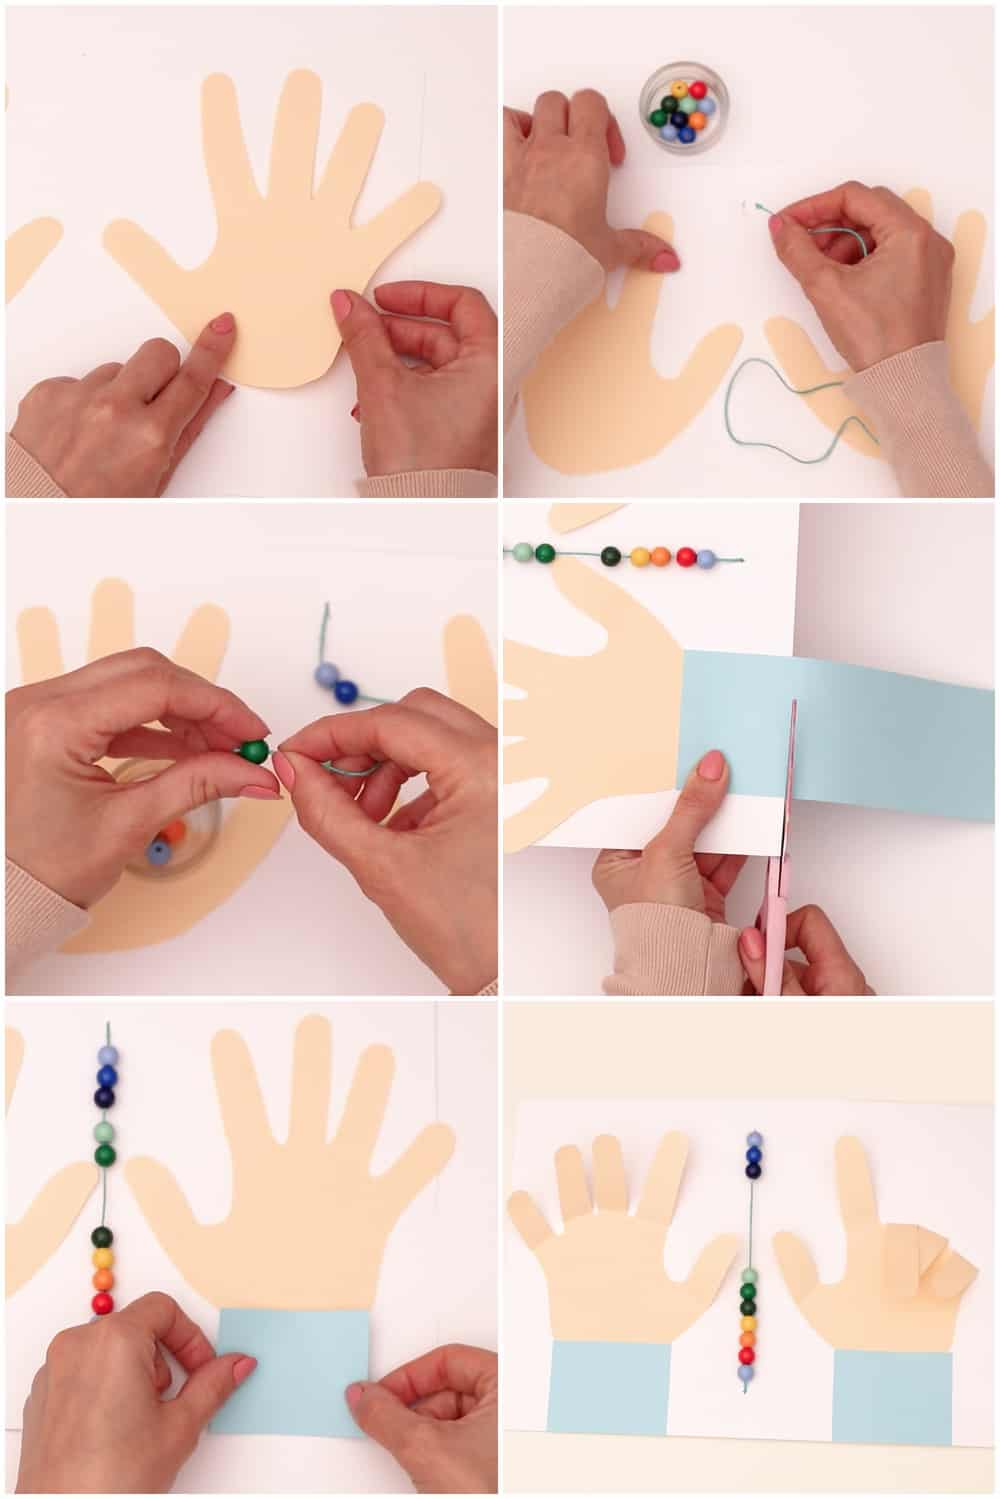 Process to make early number and math learning with paper hands cut out and counting beads